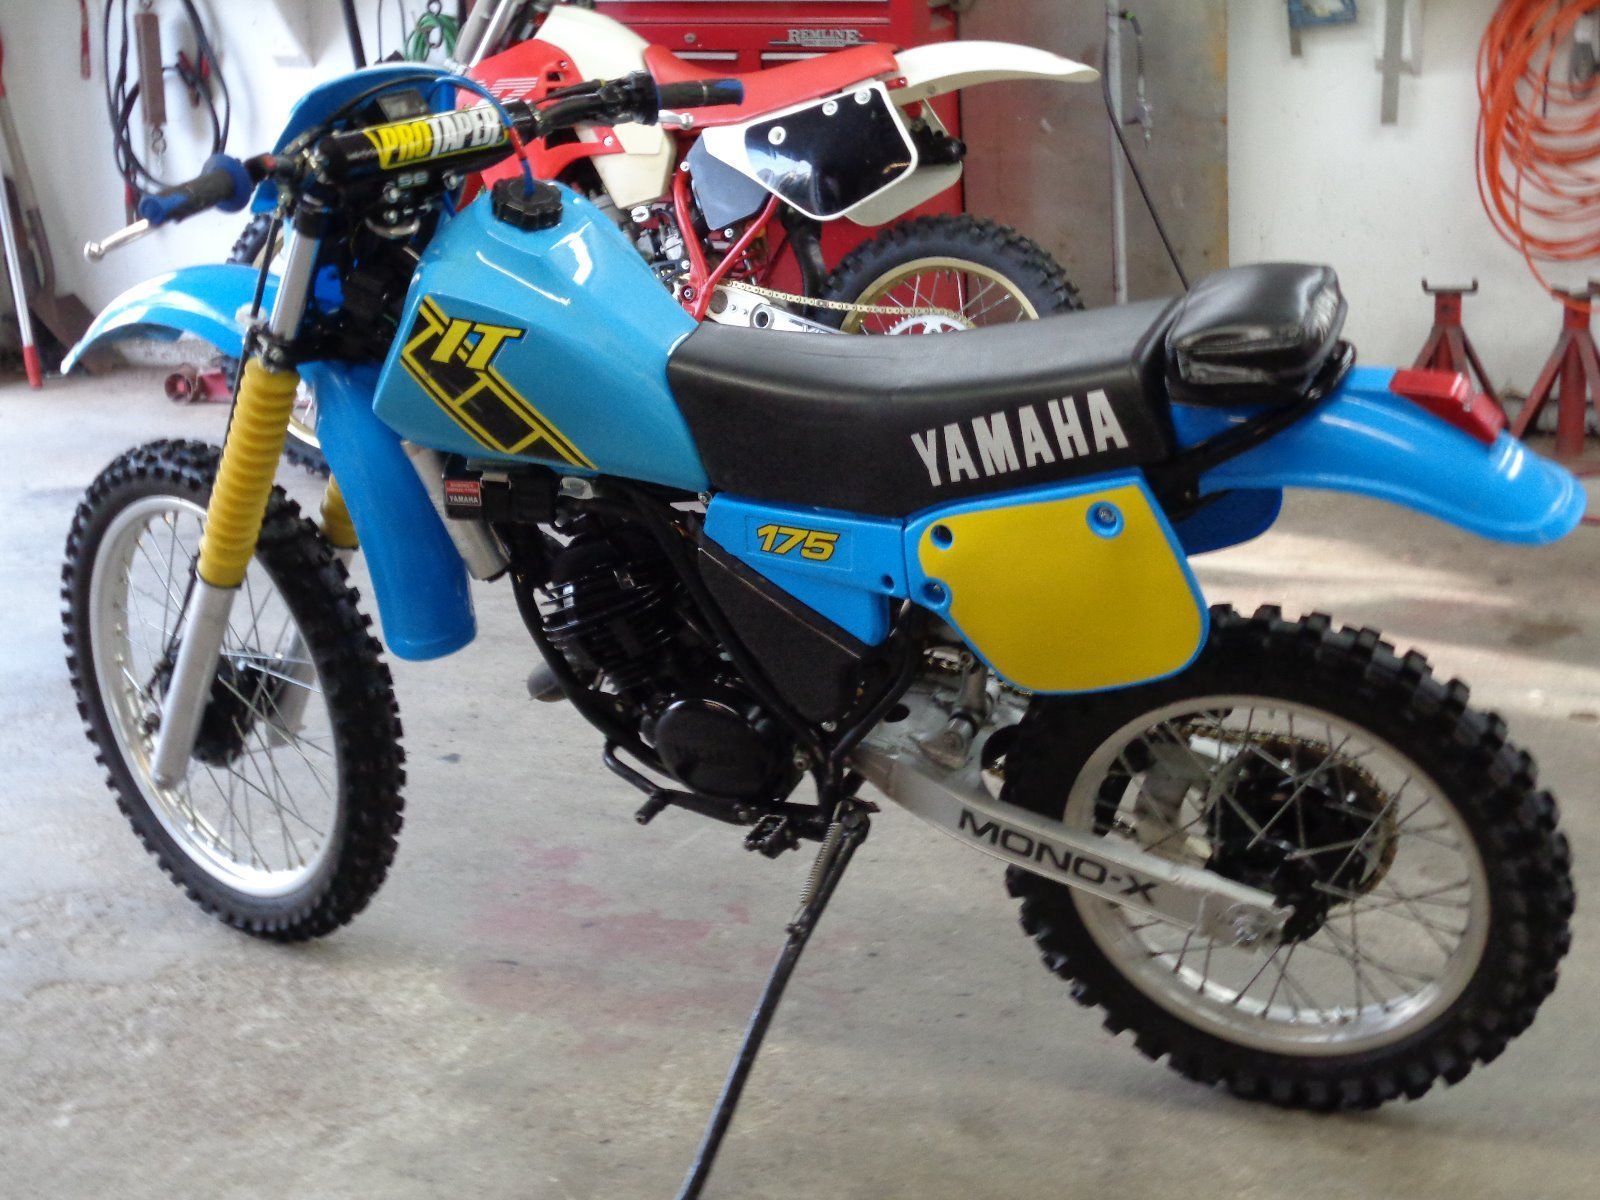 83 yamaha it175 vintage dirt bike dirt biking vintage. Black Bedroom Furniture Sets. Home Design Ideas